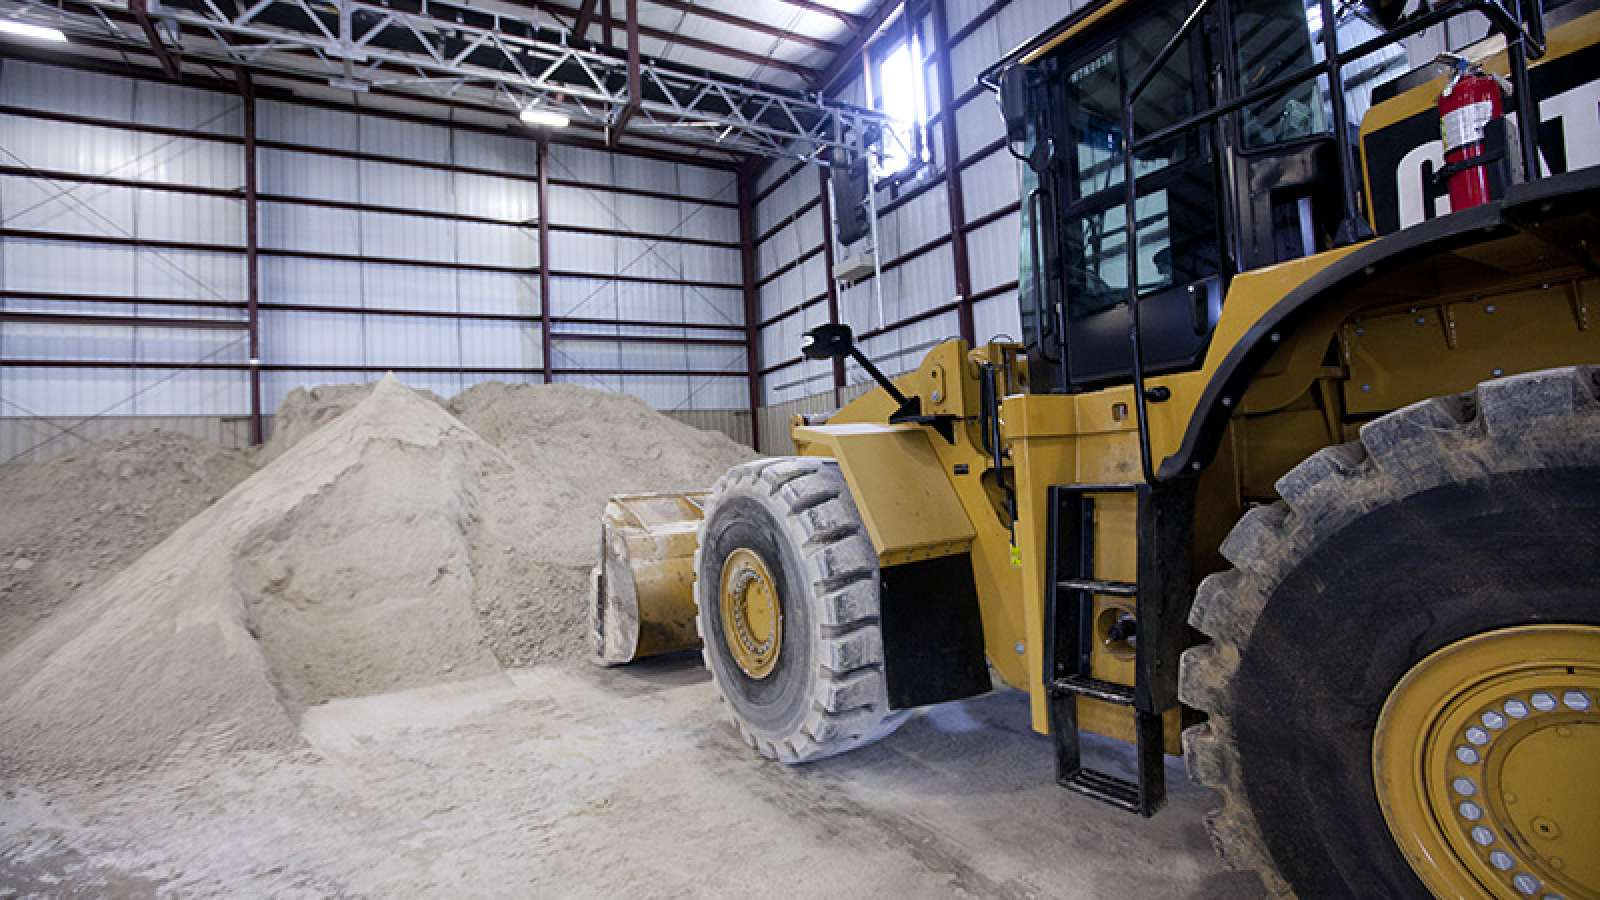 front loader scooping gypsum inside a warehouse